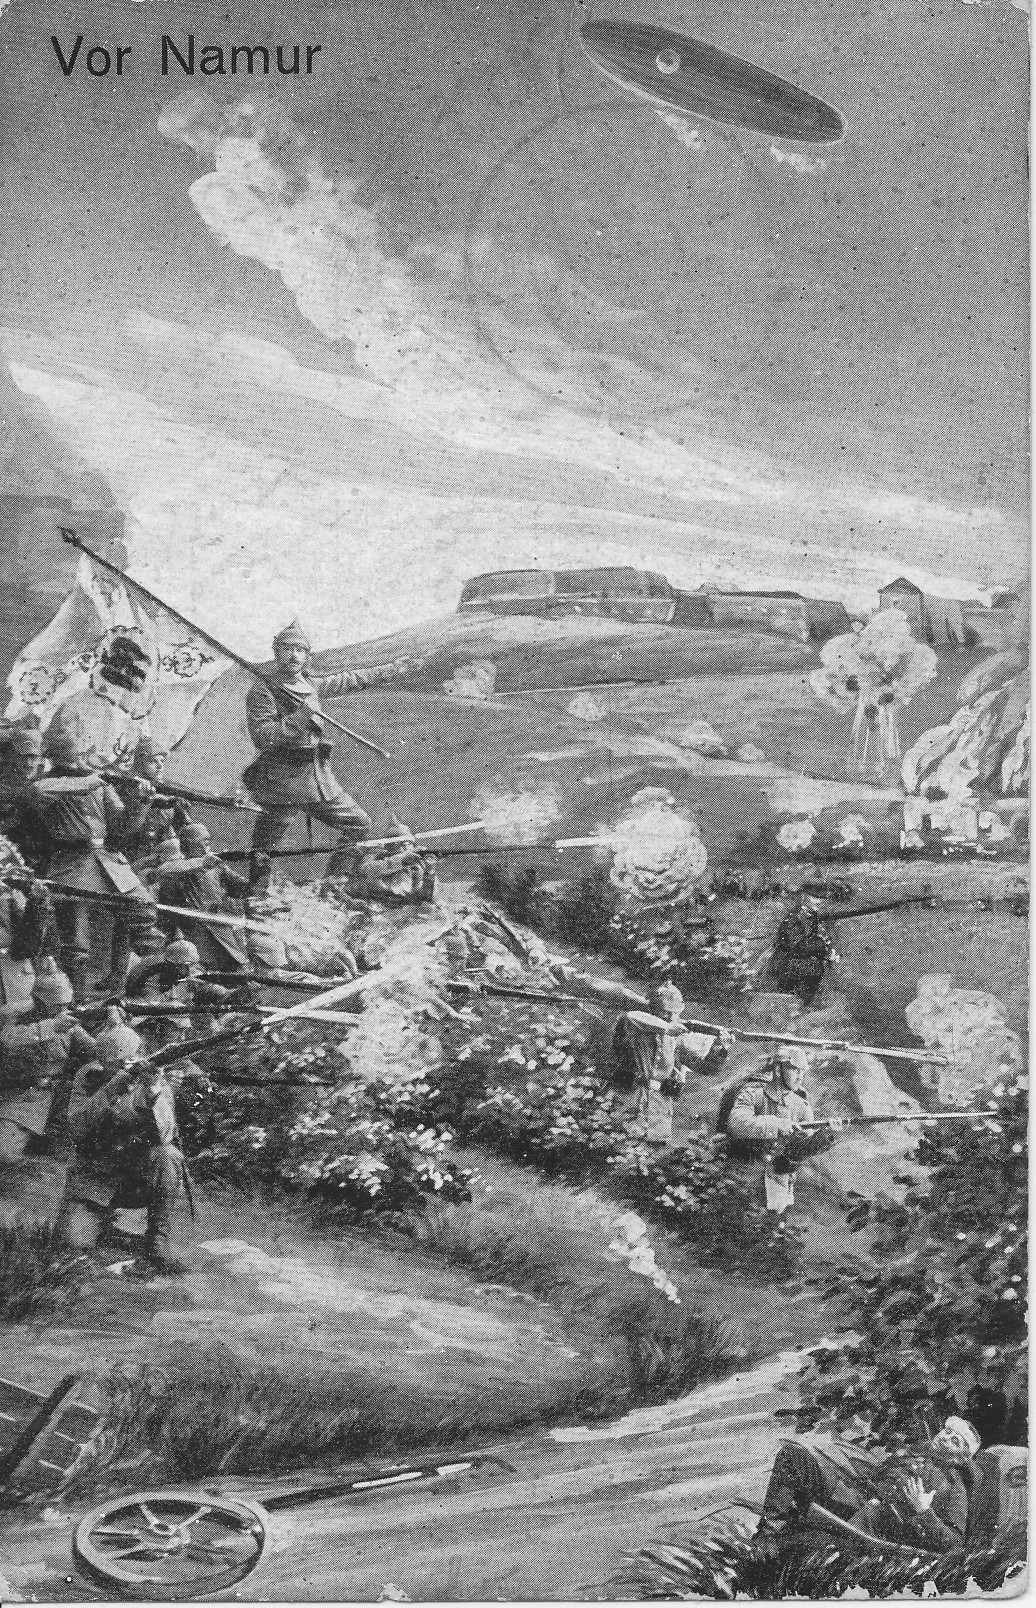 German forces — a standard bearer, and troops in picklehaube firing rifles, below a hilltop fortress. A Zeppelin is overhead, and a wounded Belgian soldier is in the foreground. Gray-tone.